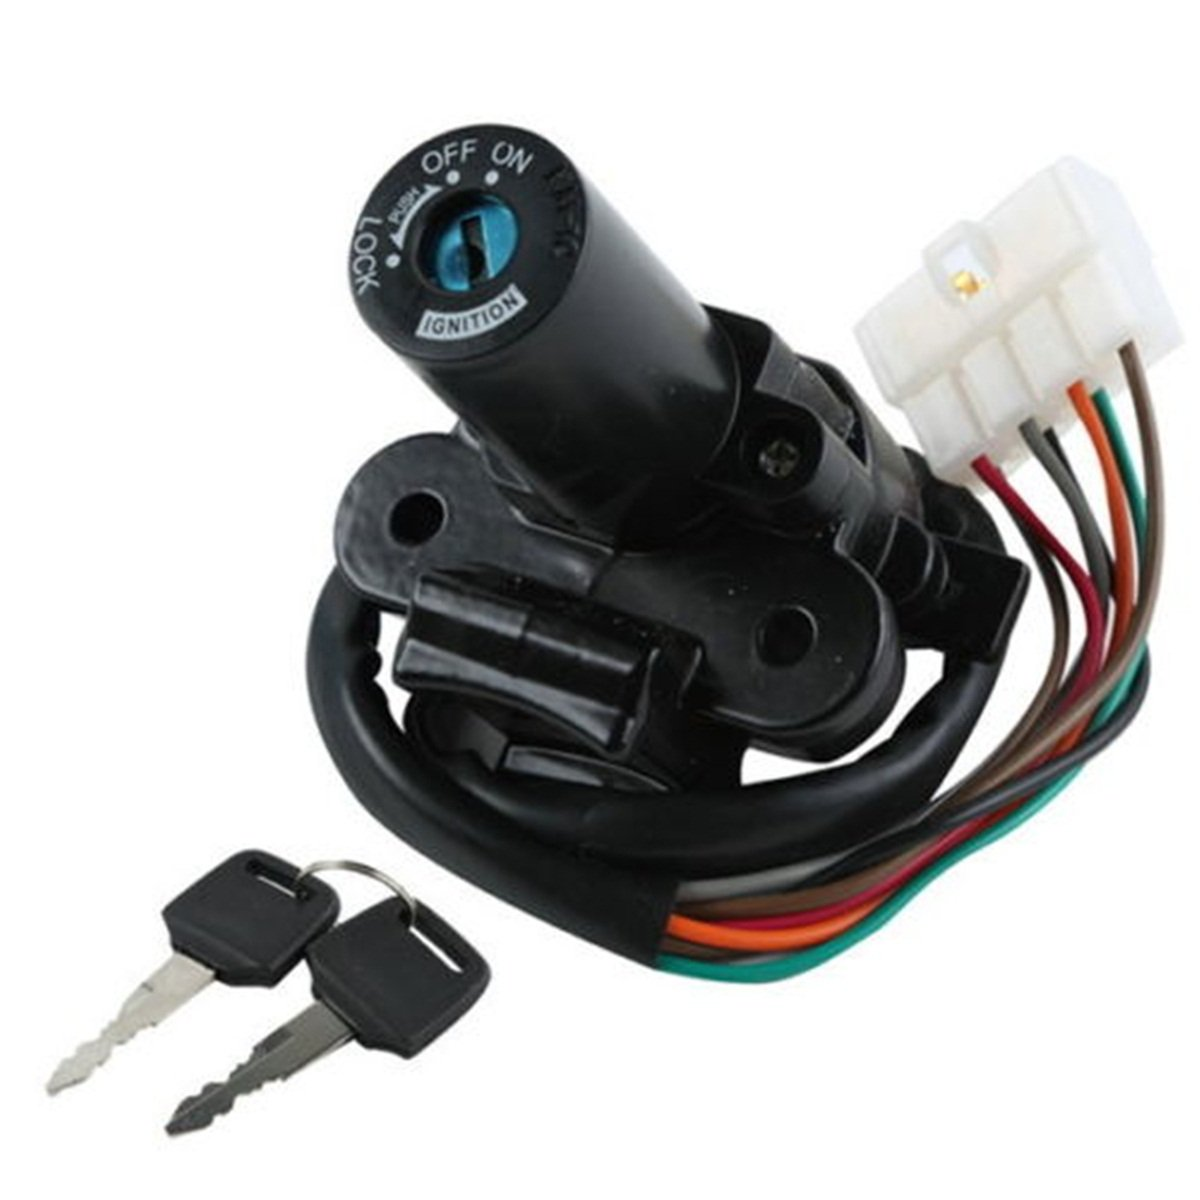 Amazon.com: Ignition Switch Lock & Keys For KAWASAKI EX250 NINJA 250R 08-12  NINJA 300 13-15: Automotive